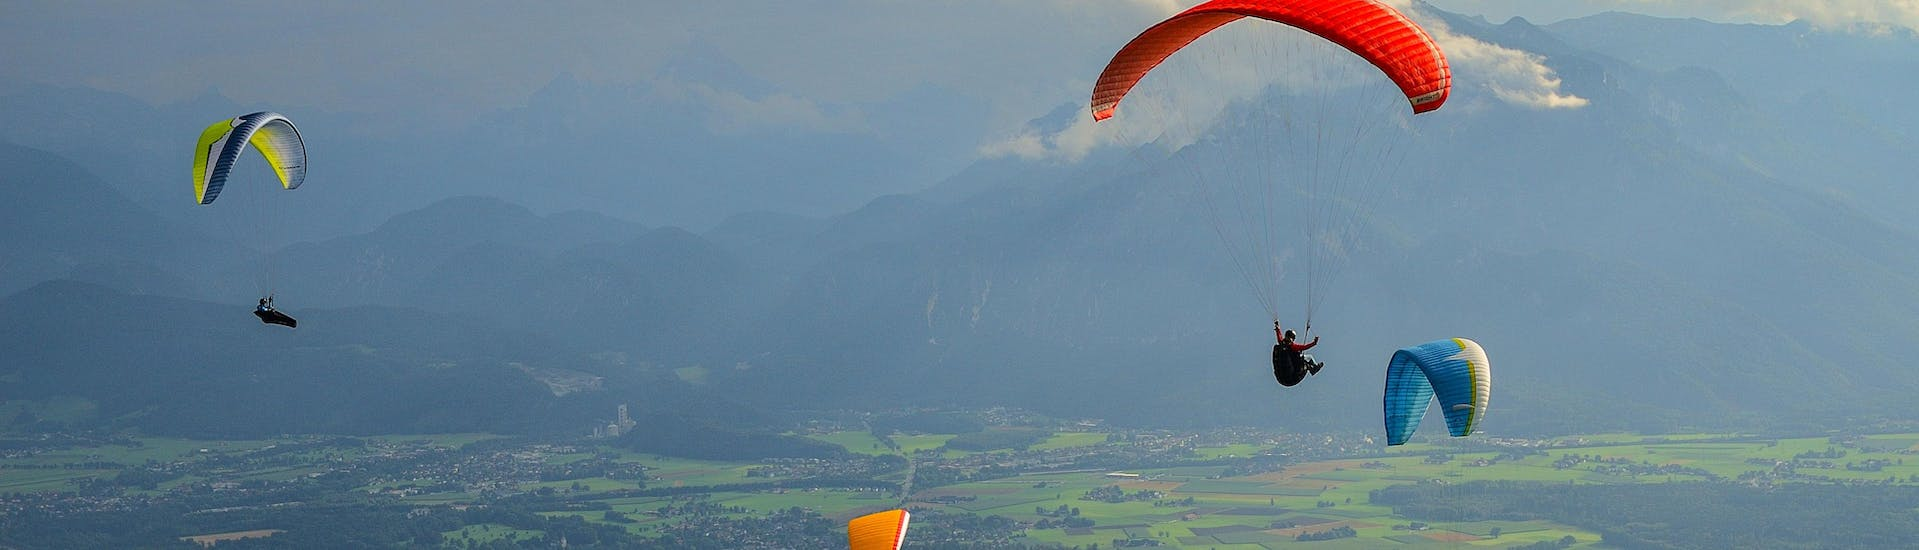 A tandem master and his passenger are sailing through cloudy skies while paragliding in Salzburg.